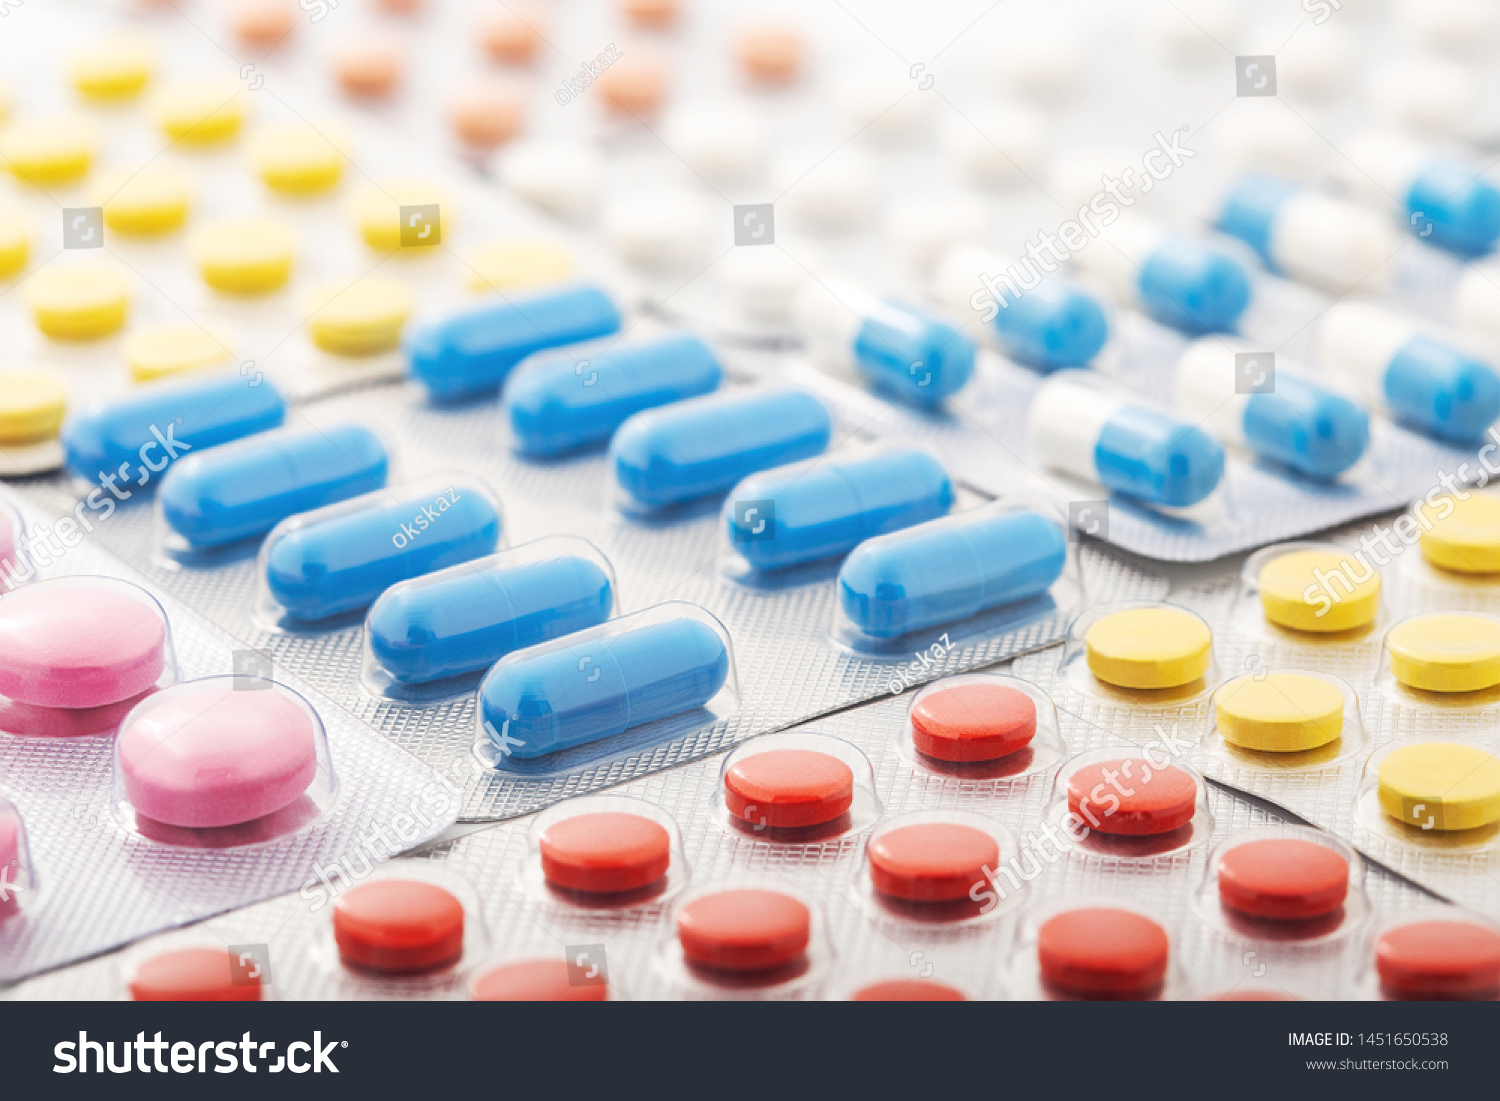 Heap of medical pills in white, blue and other colors. Pills in plastic package. Concept of healthcare and medicine. #1451650538